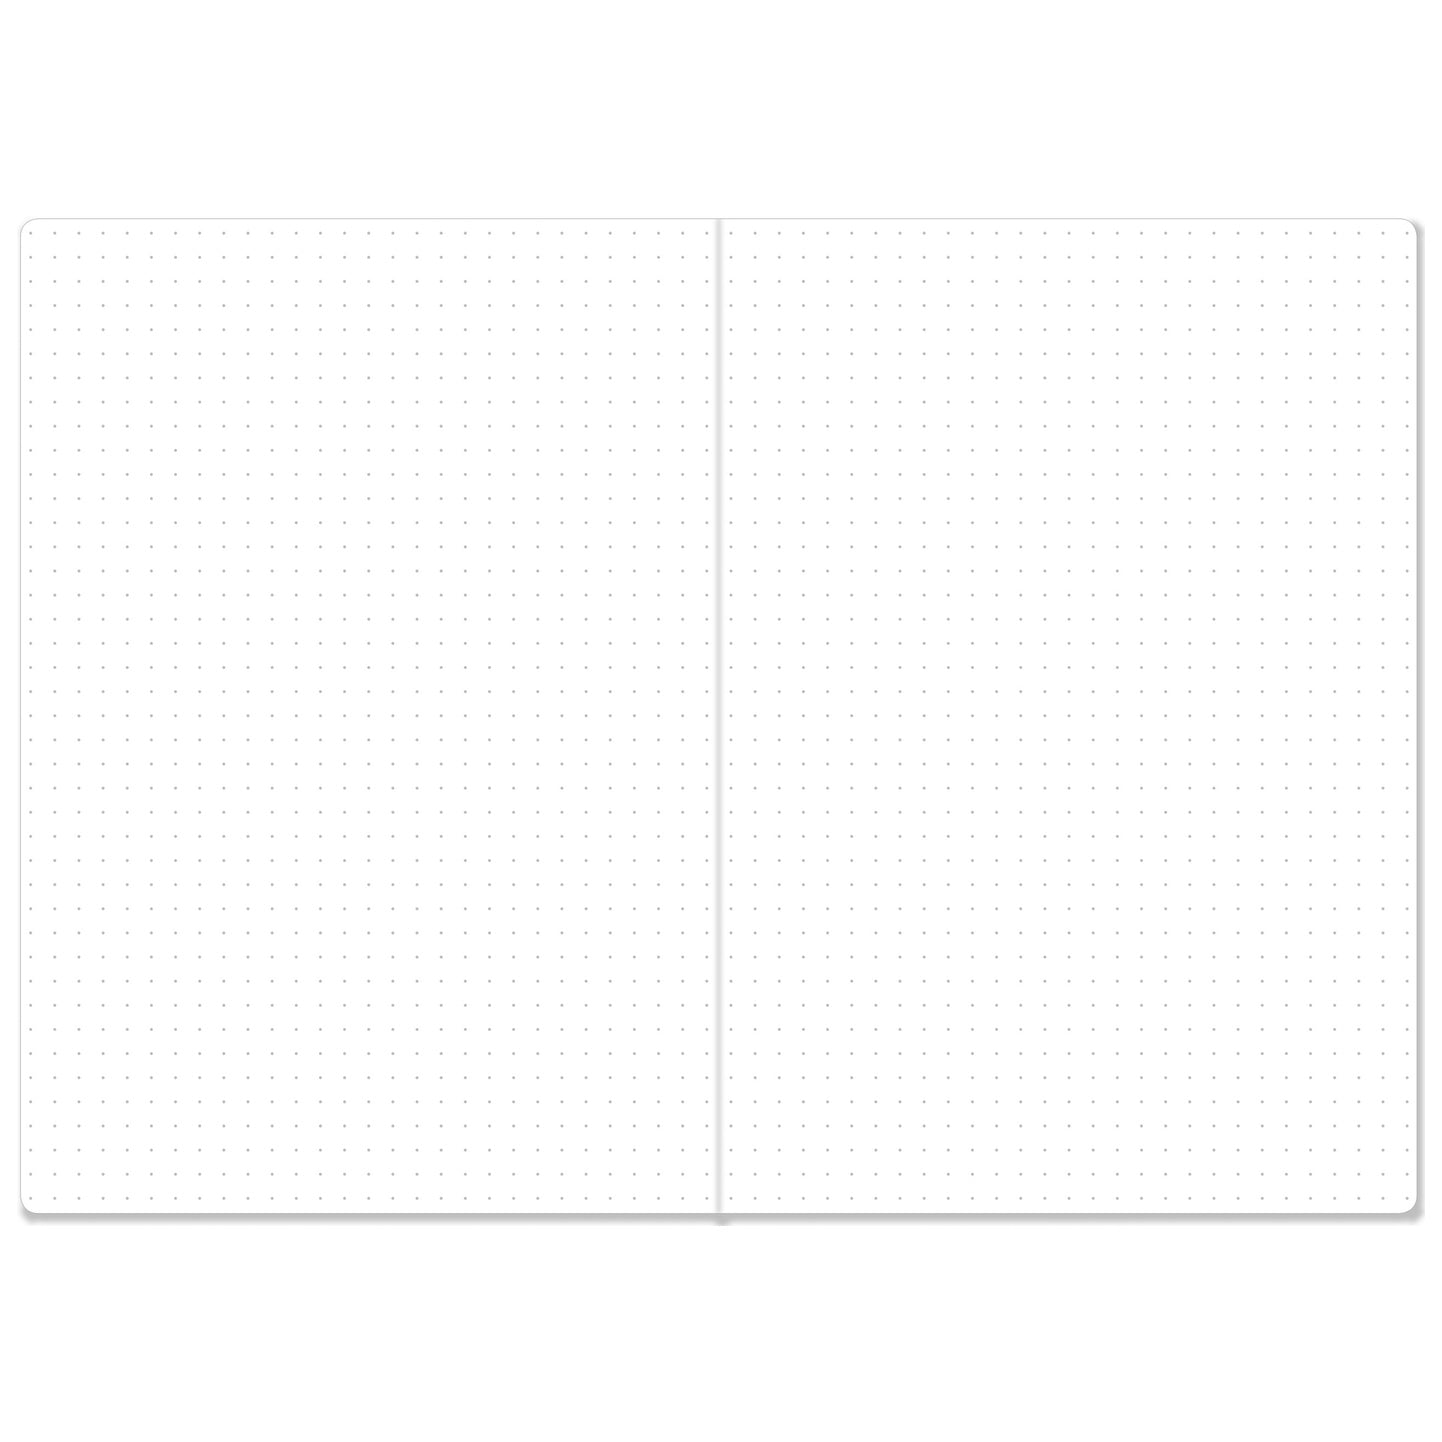 A5 DOT GRID NOTEBOOK : ESSENTIALS